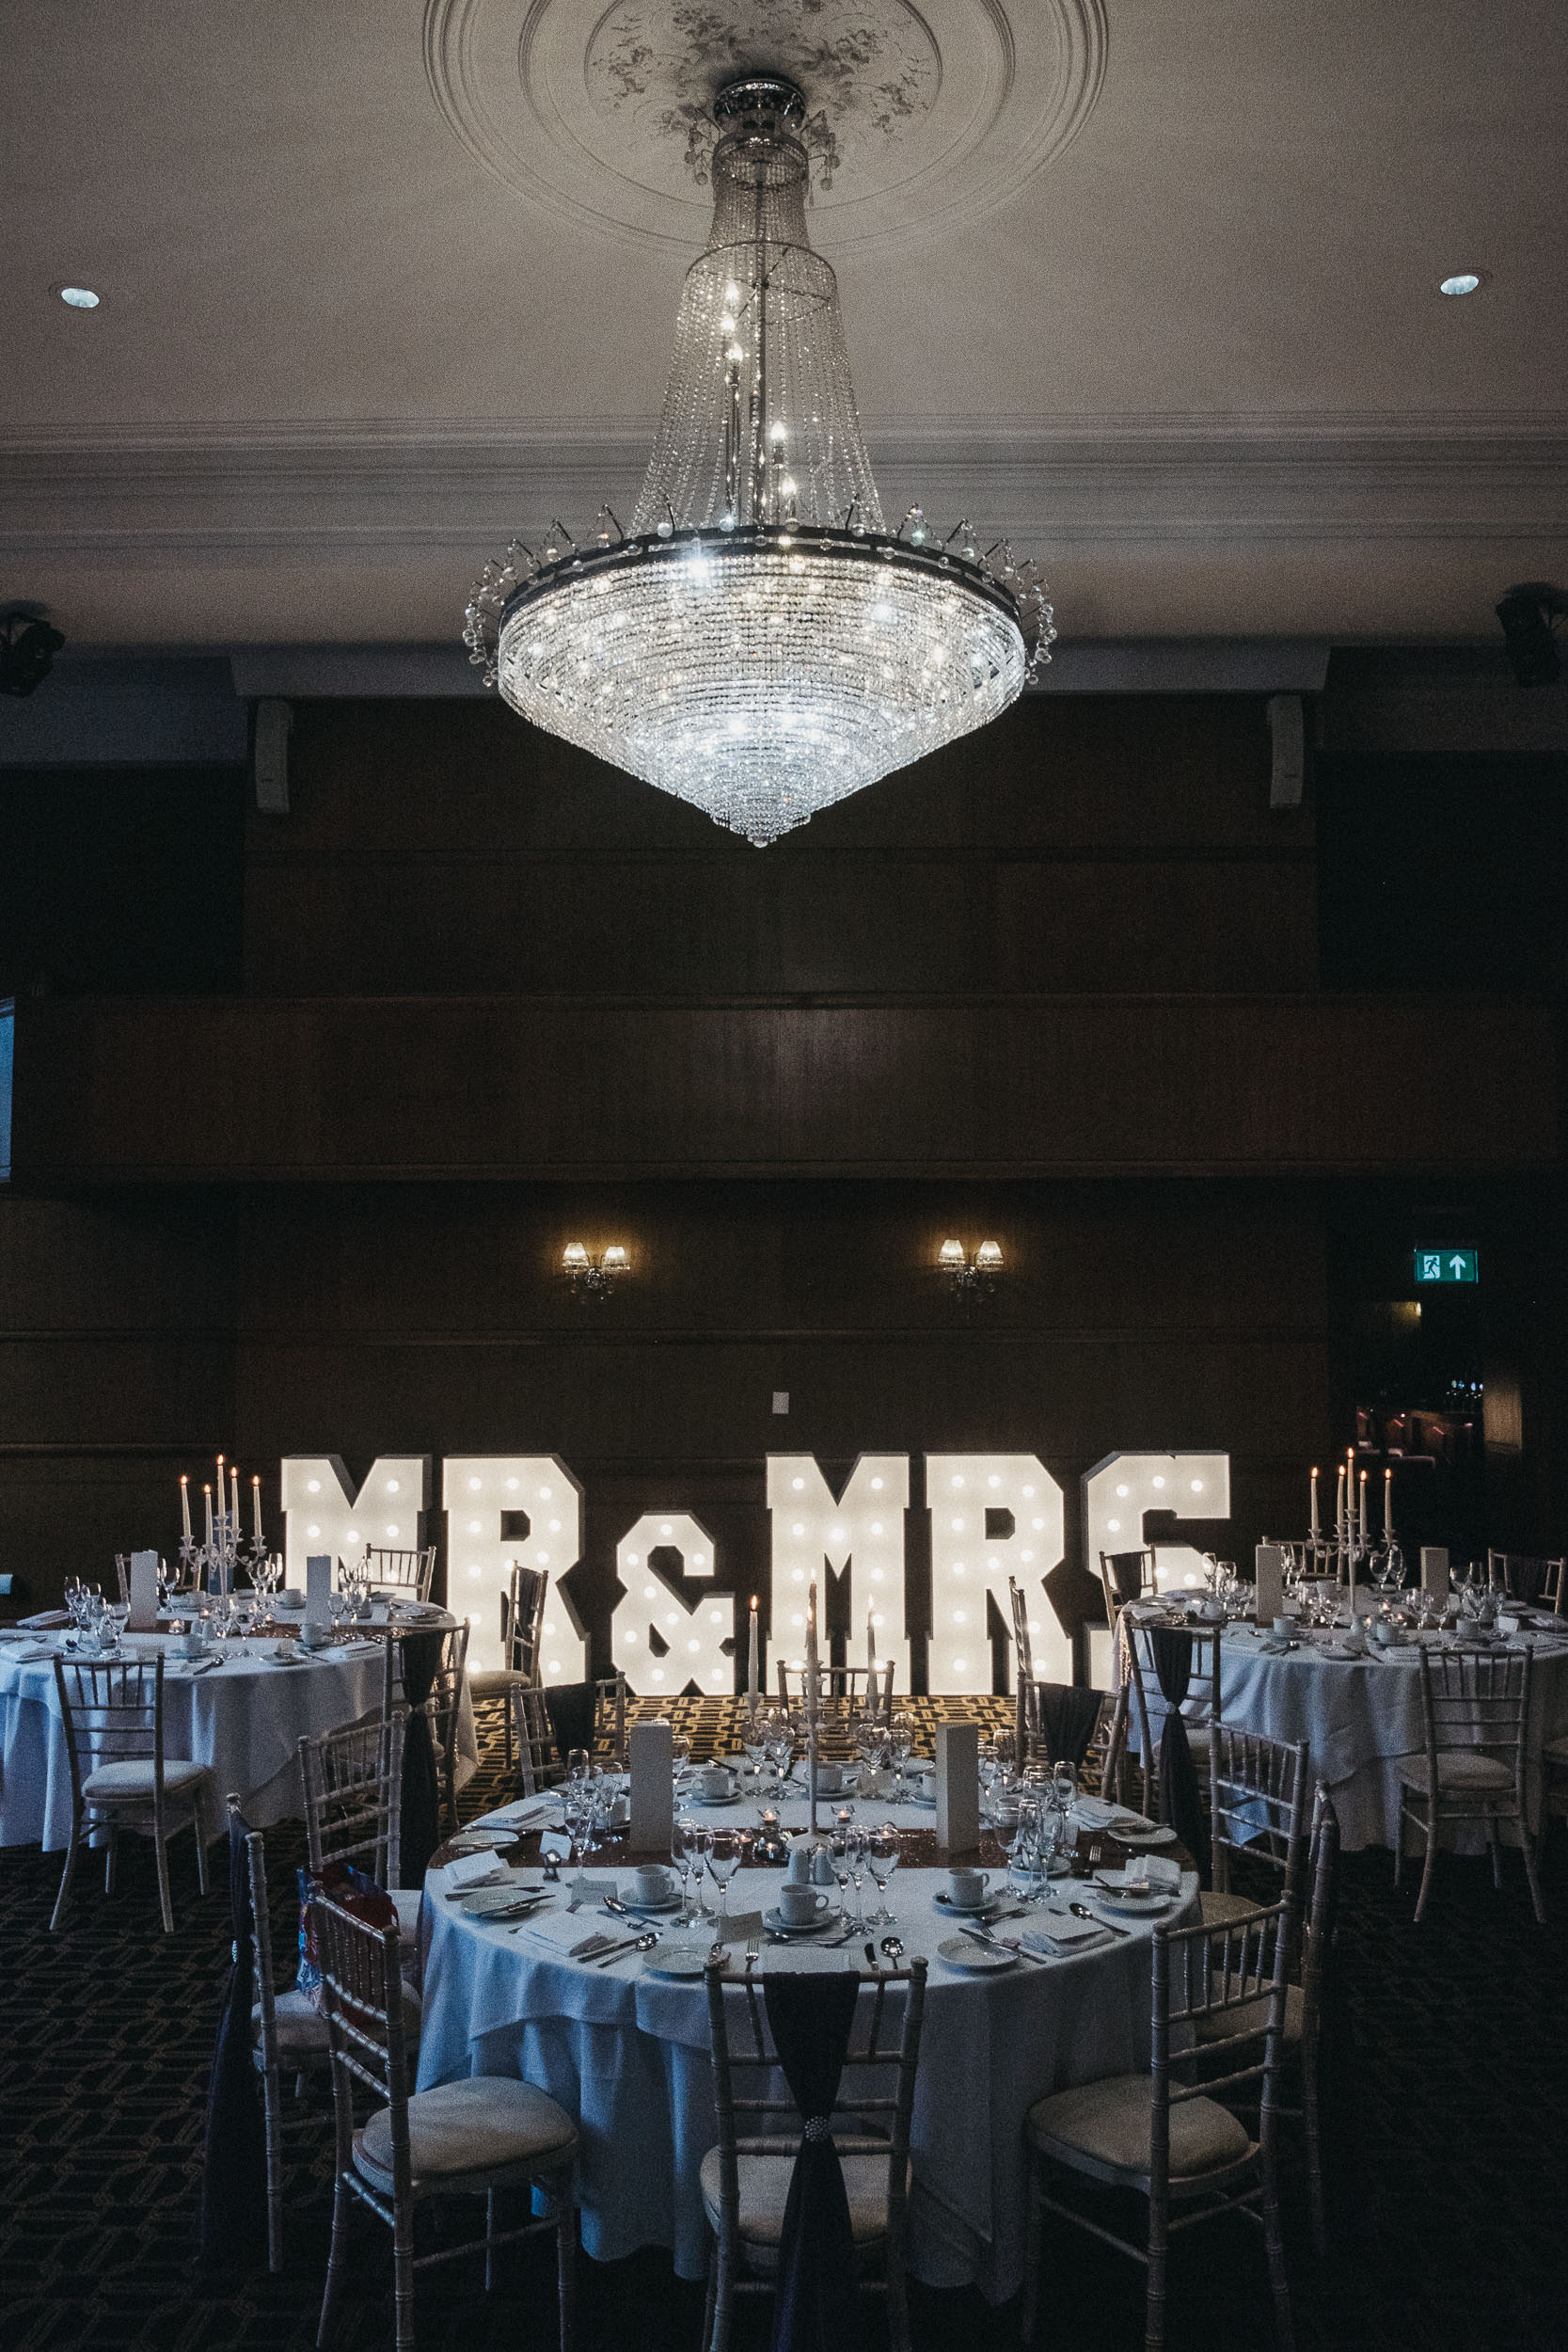 Reception room in the Vermont Hotel with grand chandelier and Mr & Mrs sign